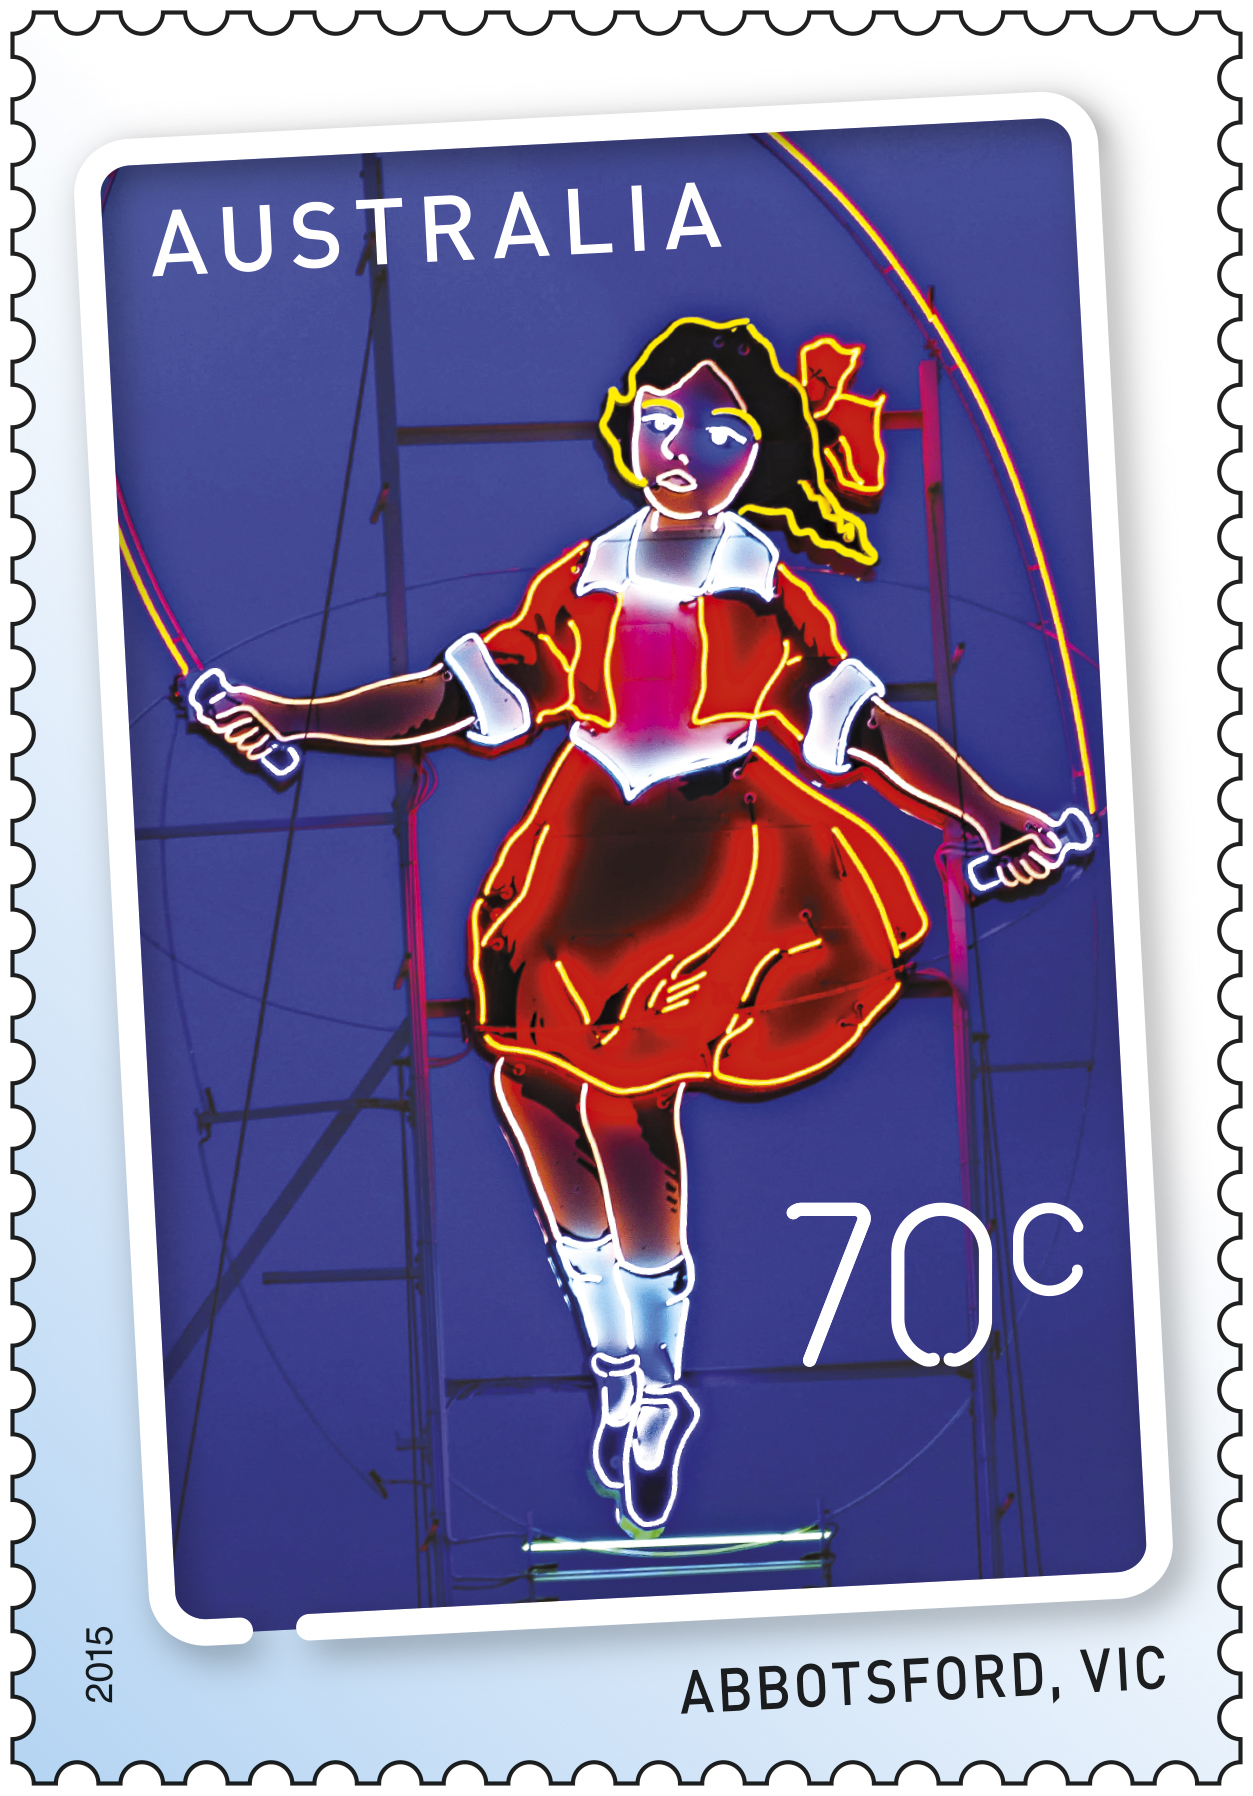 70c Signs of the Times_Skipping Girl - Abbotsford Victoria